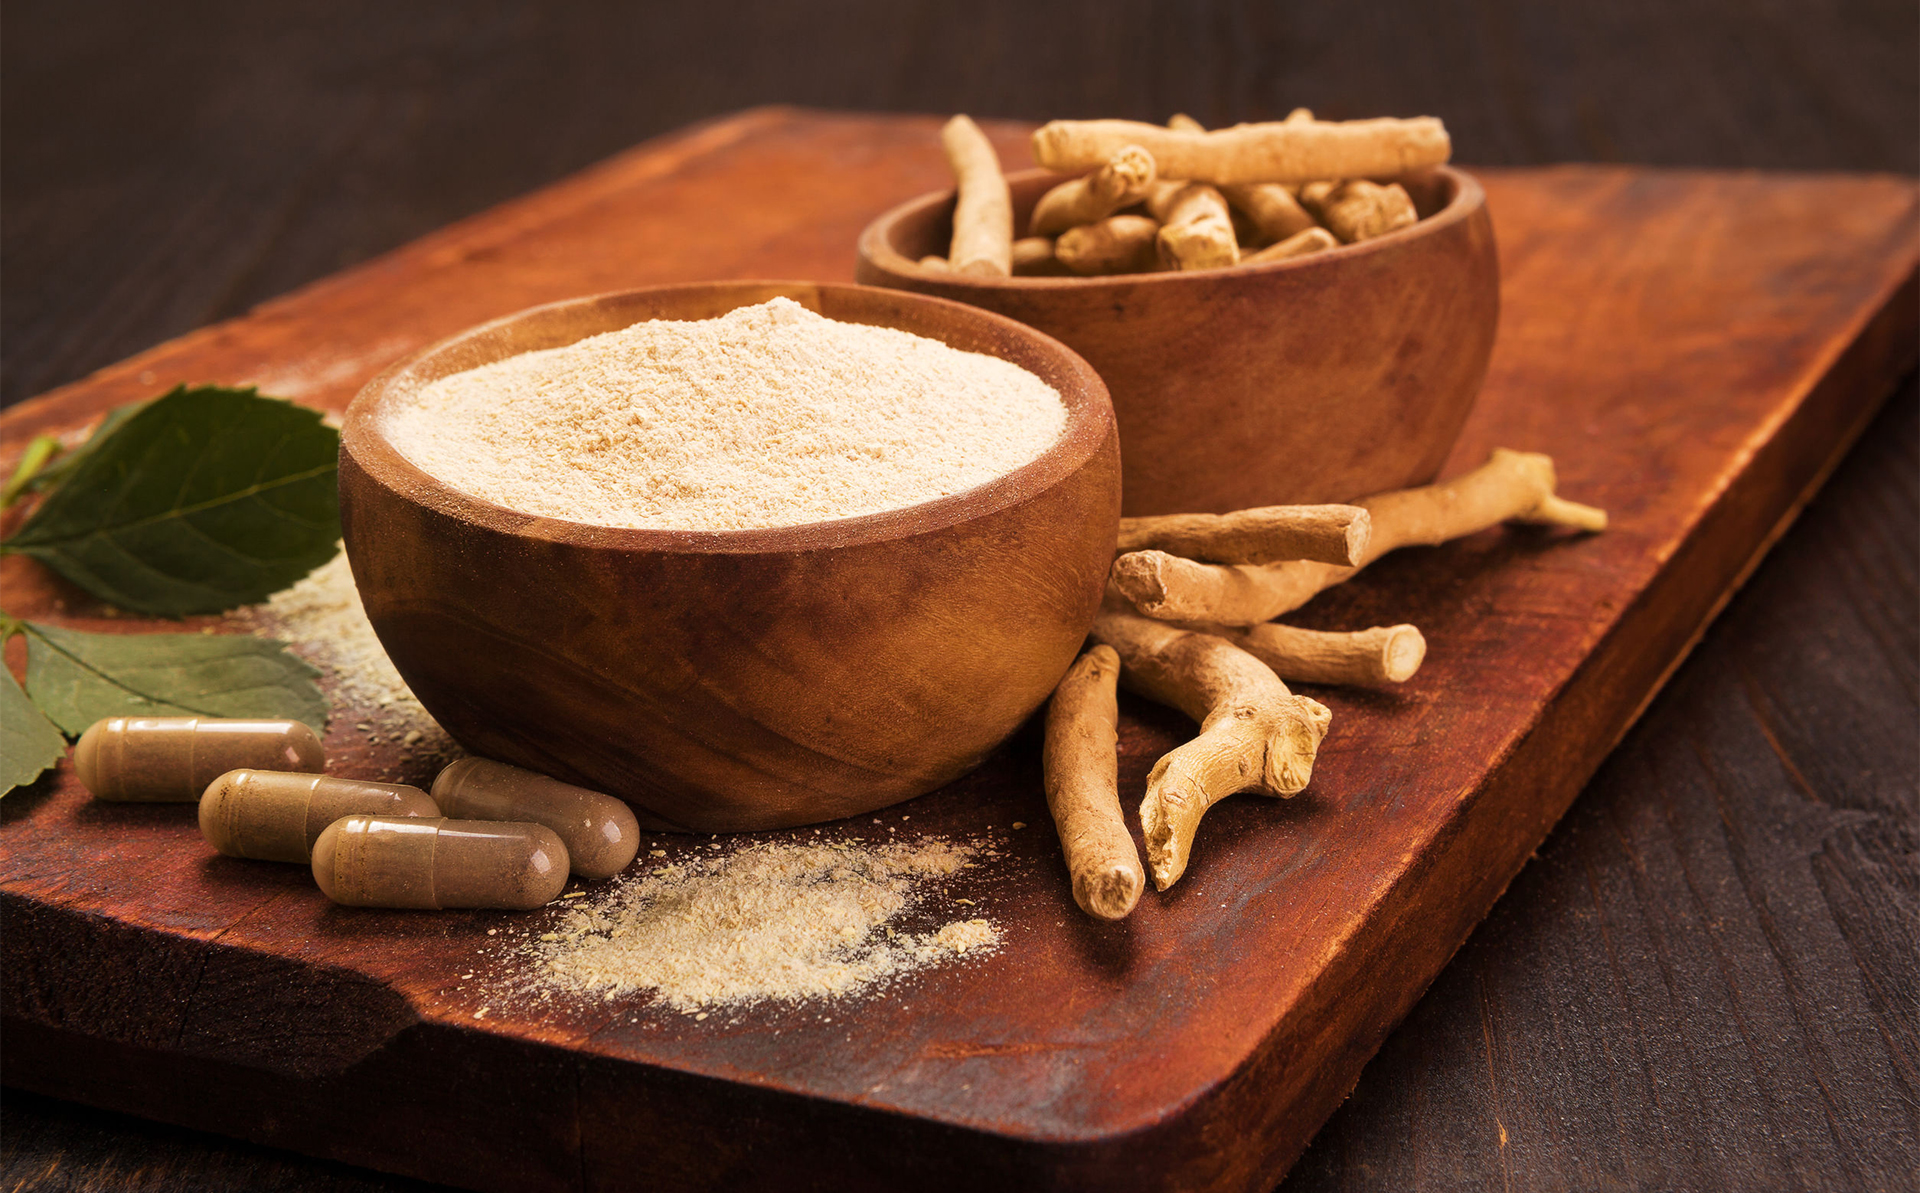 Ashwagandha – effects and functions of the ayurvedic super plant